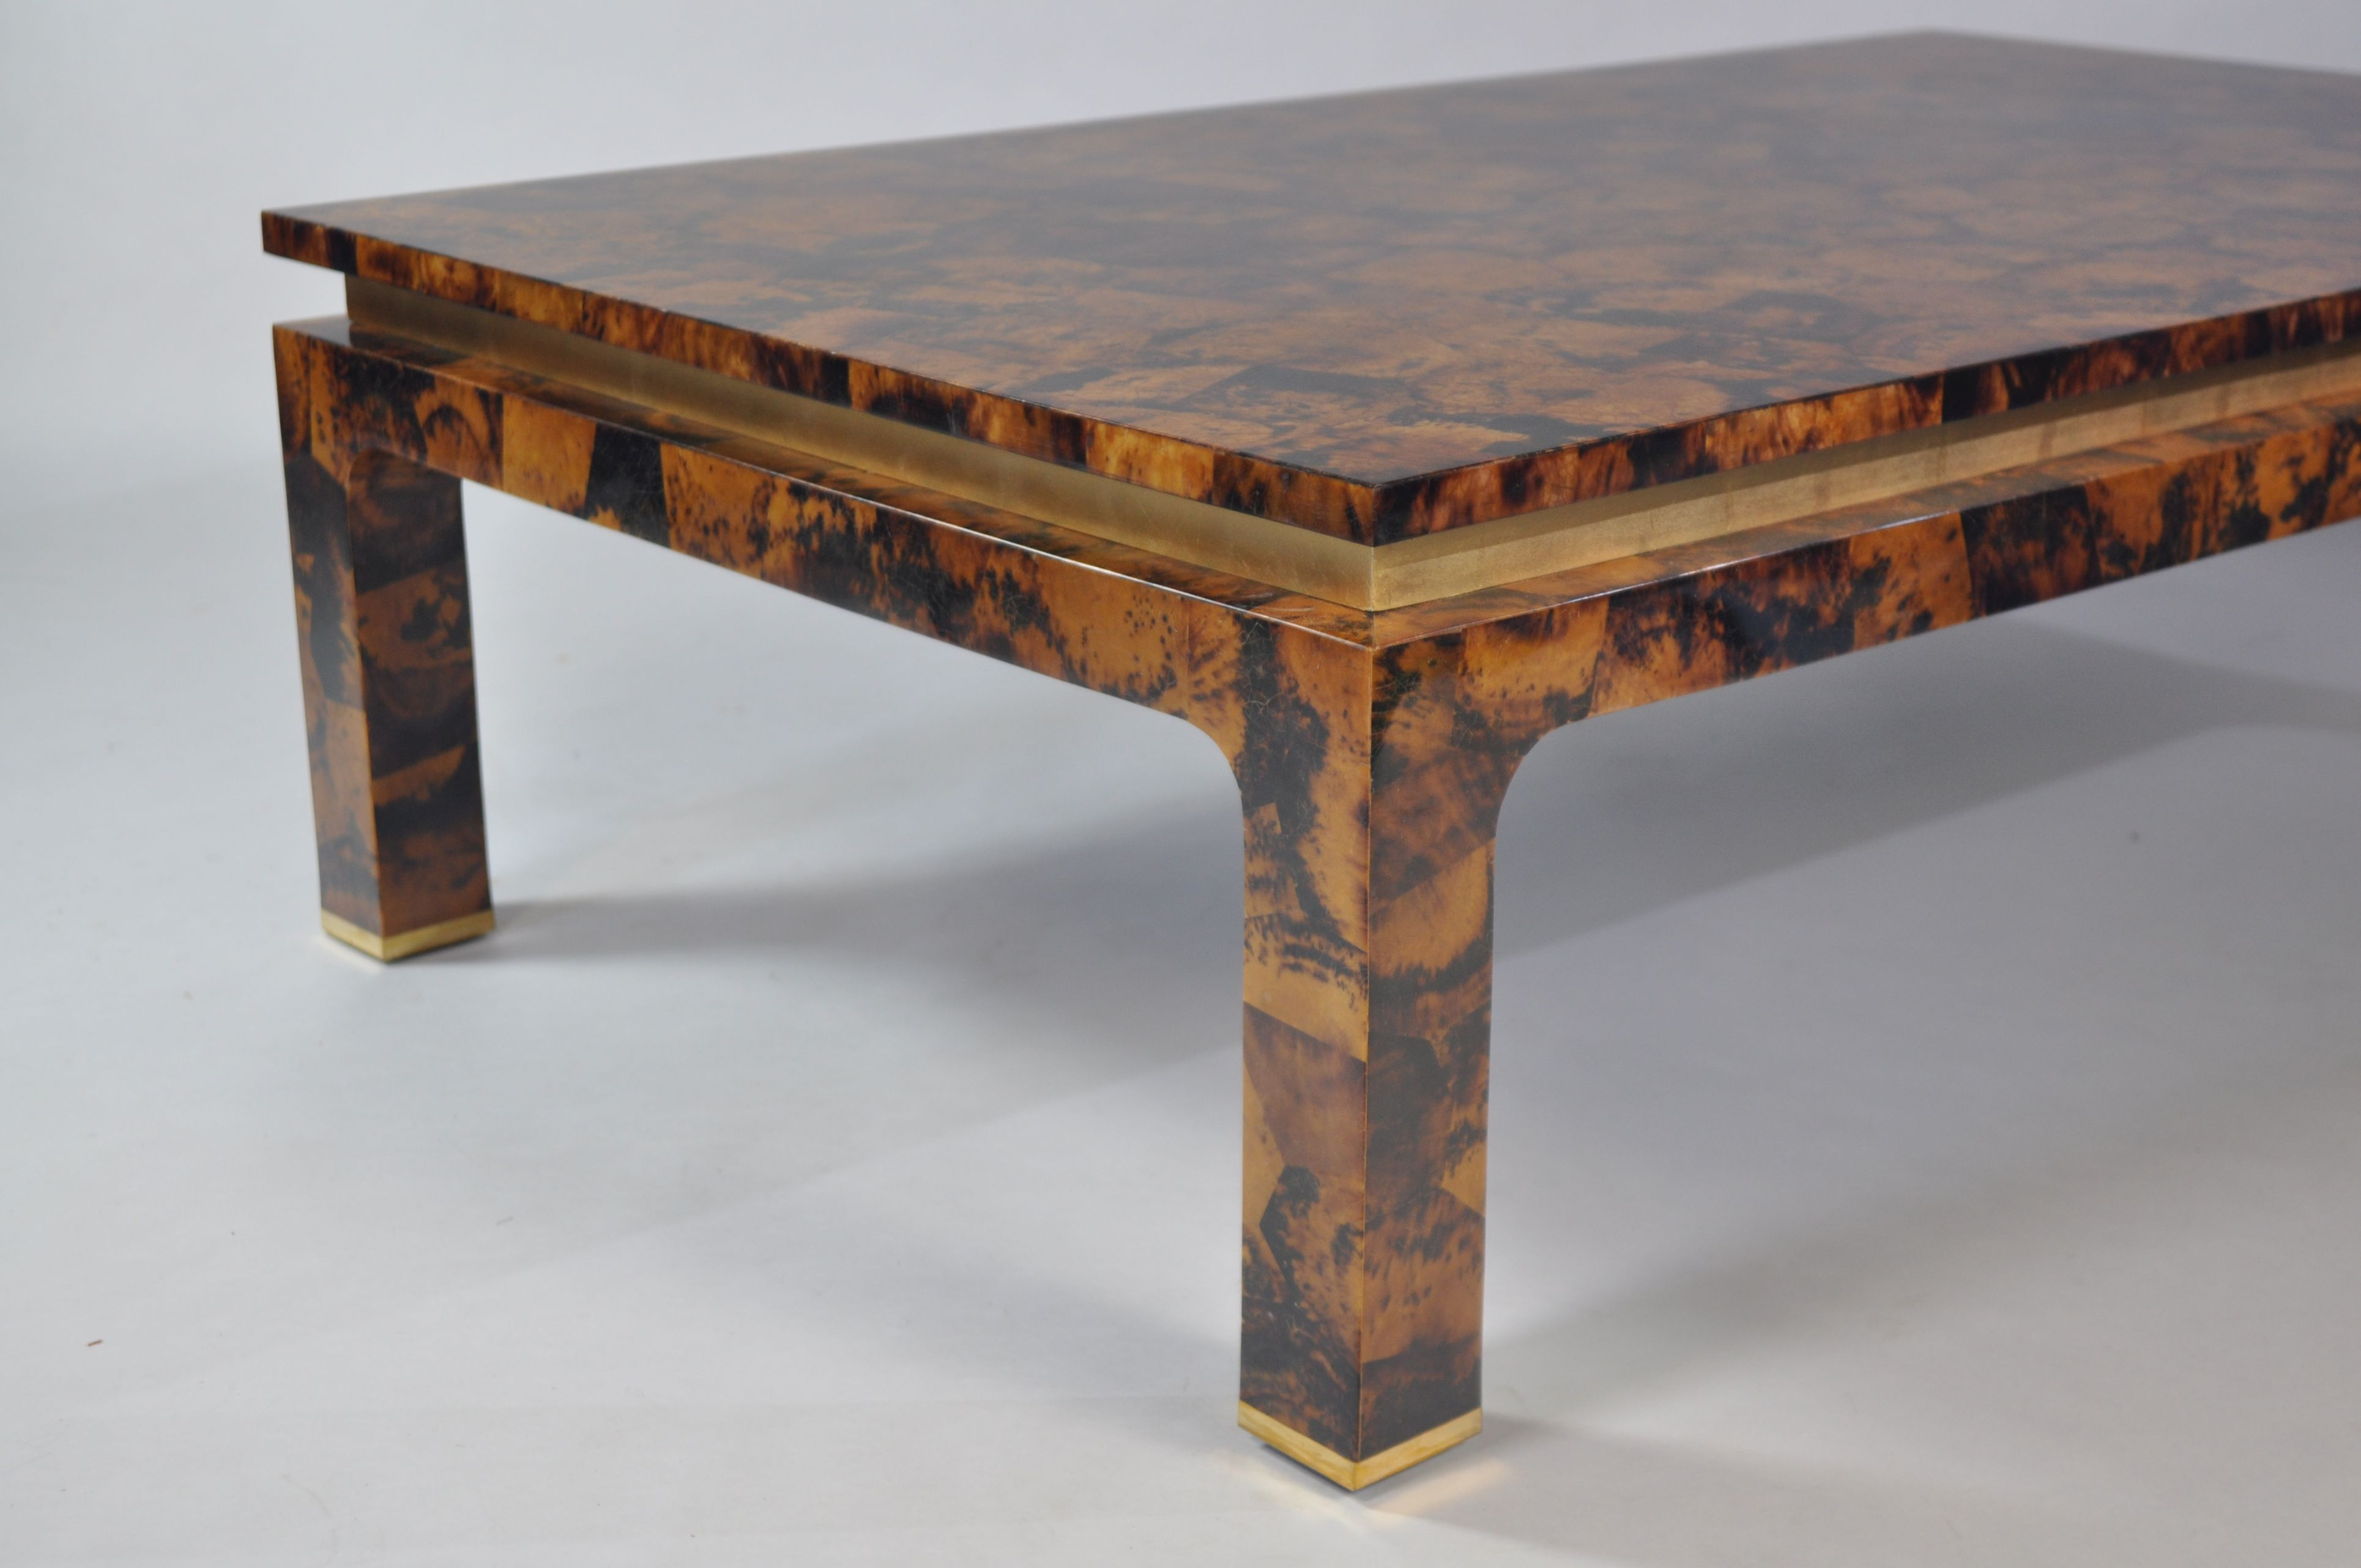 Delicieux Tiger Penshell Coffee Table